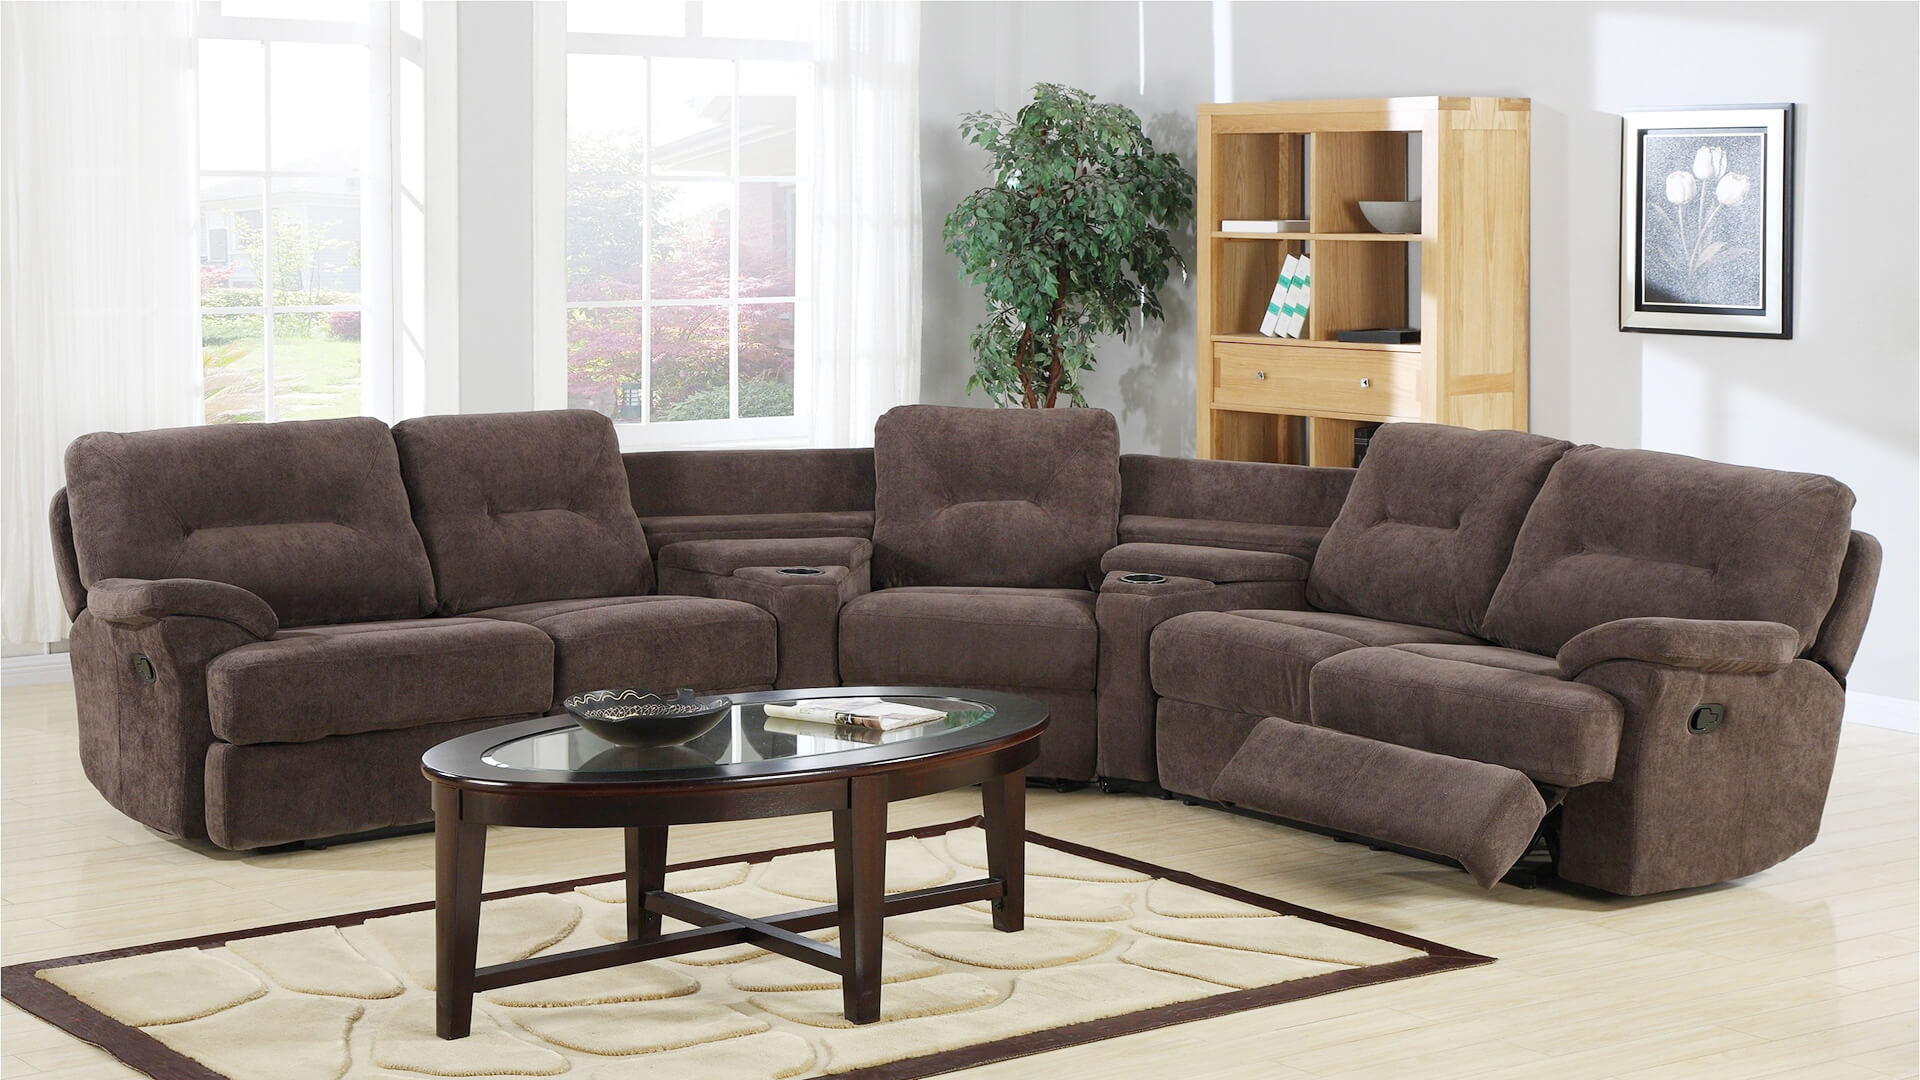 Importance of Sectional Sofa